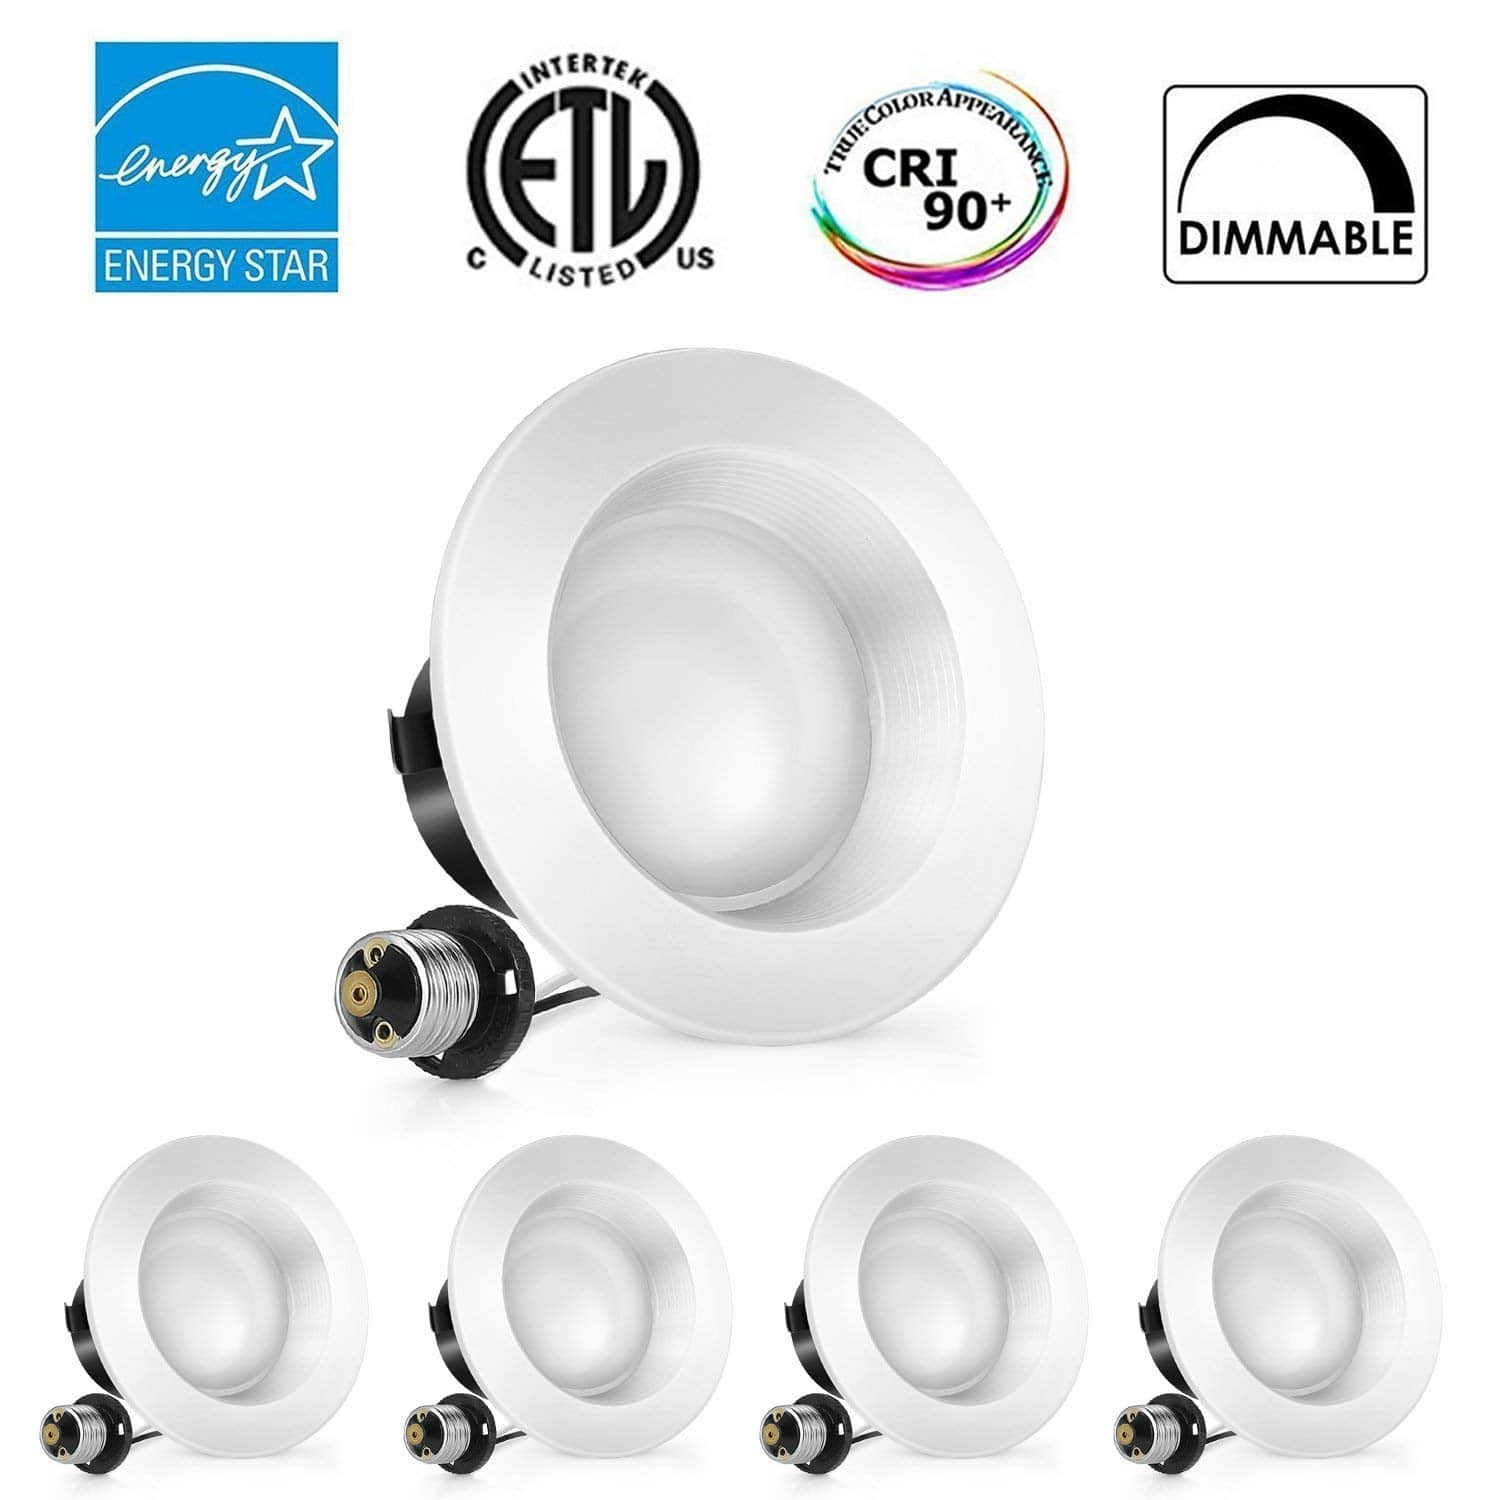 4-Pack 4 inch Dimmable LED Downlight, 100W Replacement 4000K or 5000K $19.19 $19.99